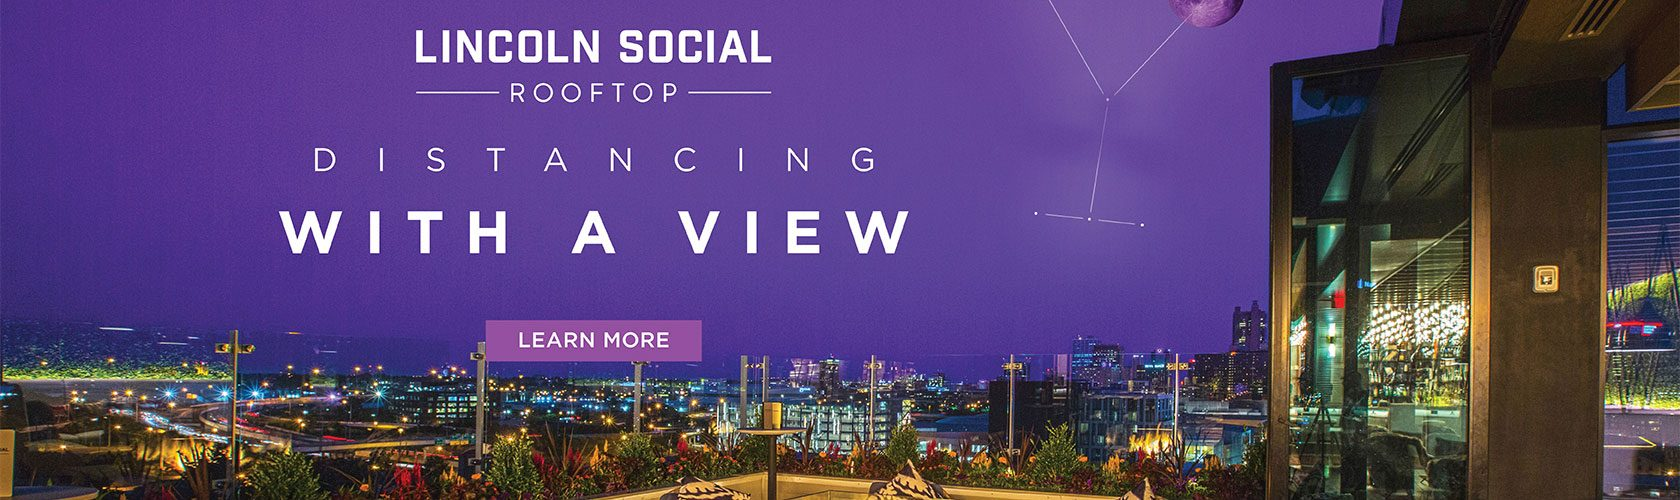 Lincoln Social Rooftop. Distancing with a view. Learn More.